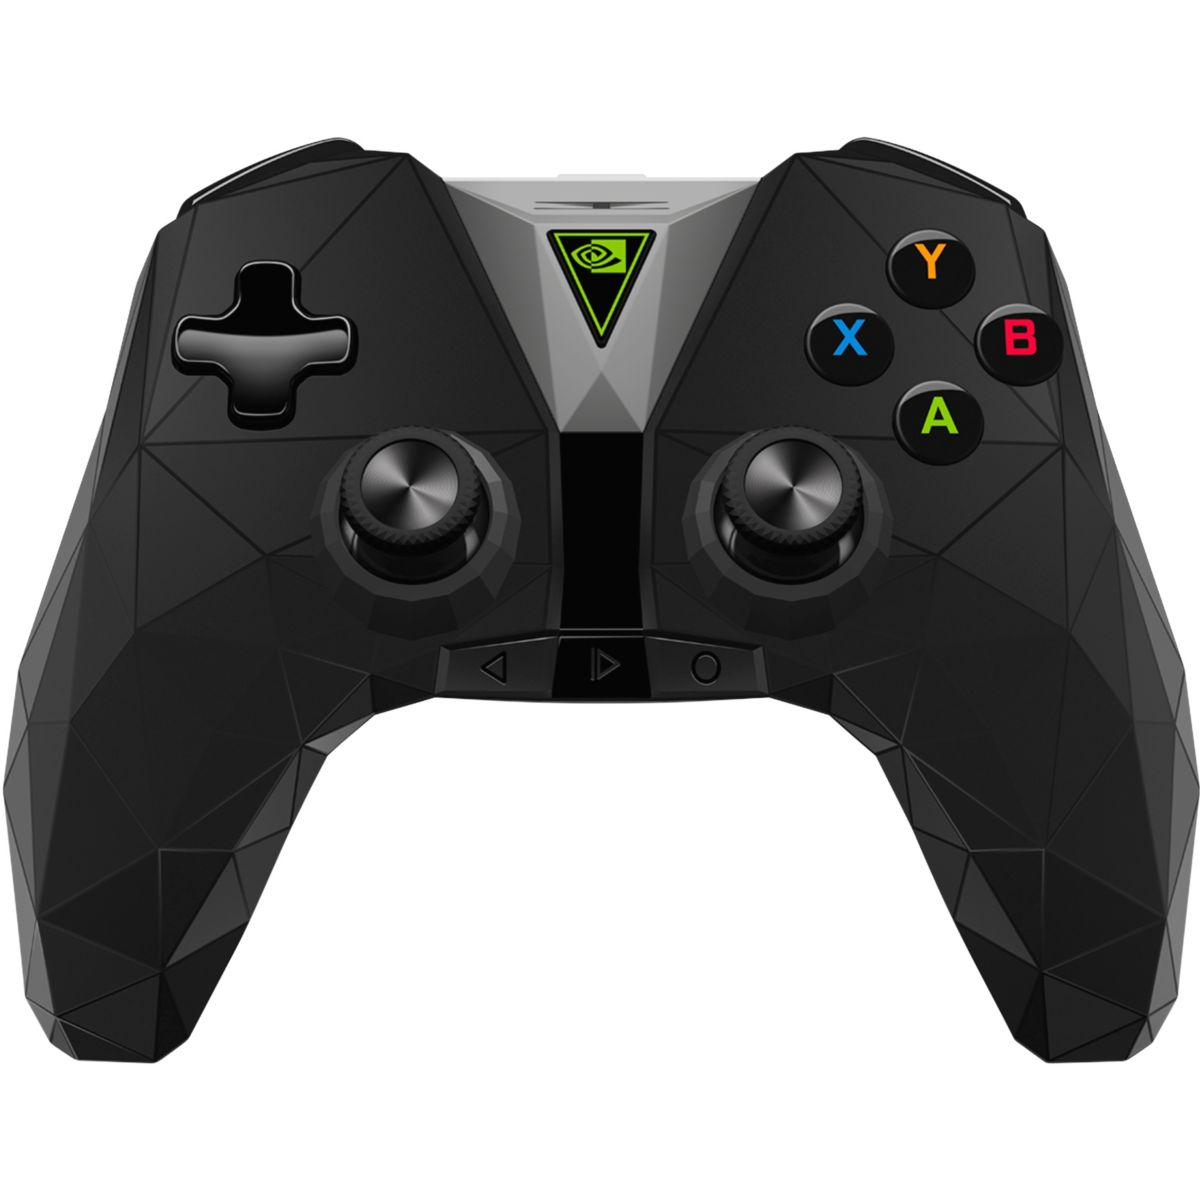 Manette NVIDIA Sans fil pour SHIELD TV